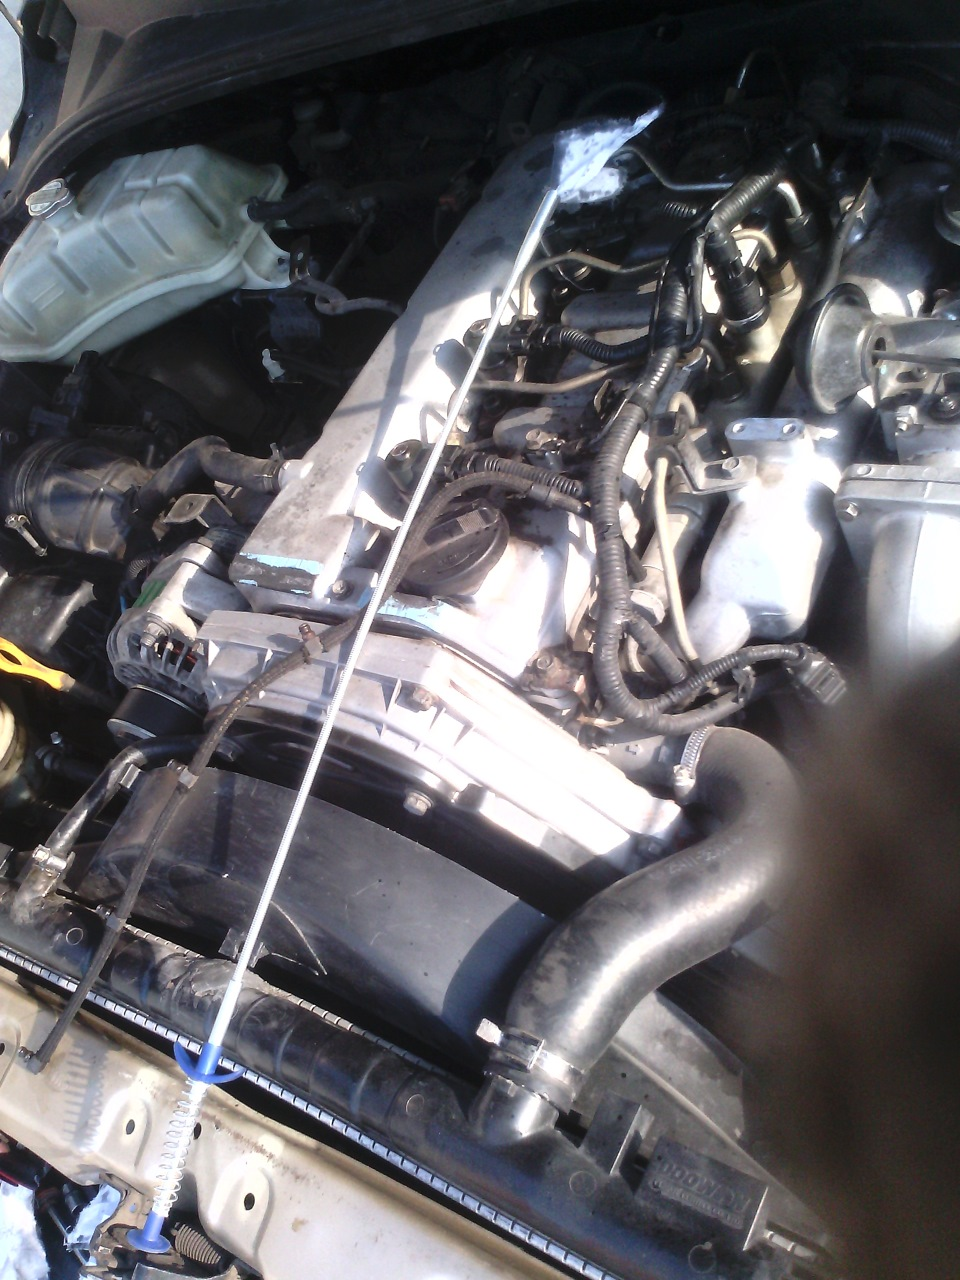 Nozzle Logbook Kia Sorento 2003 On Drive2 Fuel Filter Powered By Google Translate